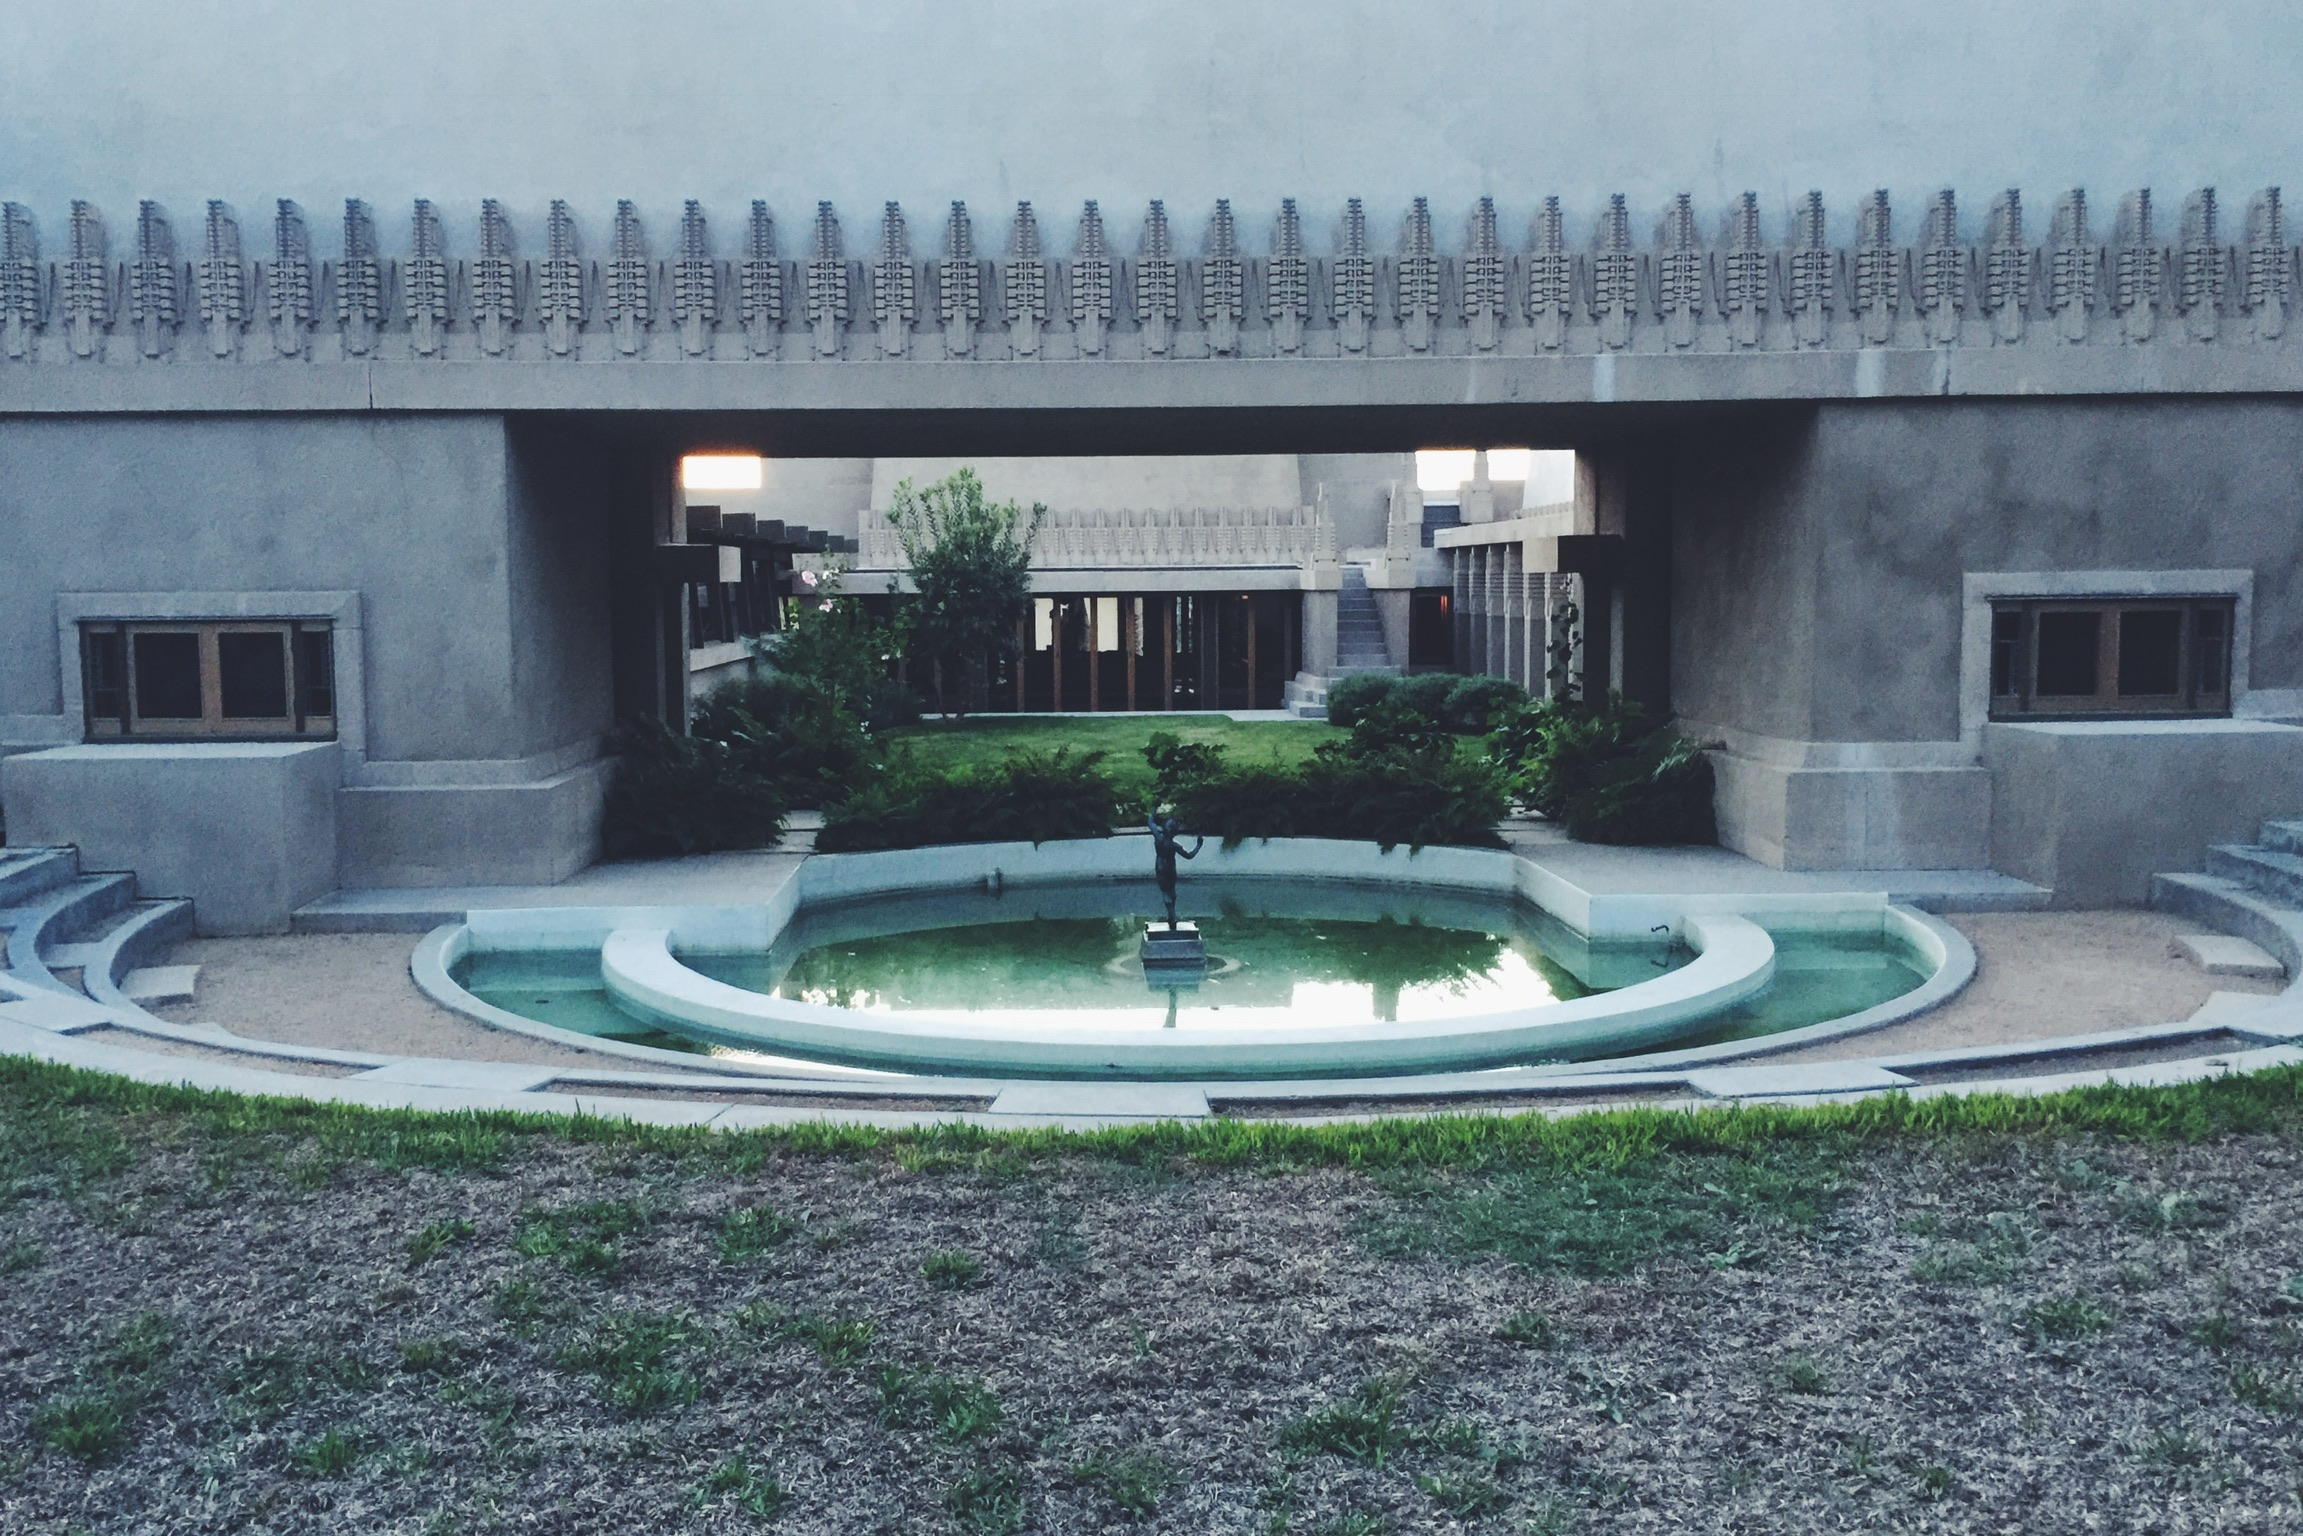 Reflecting pool & inner courtyard